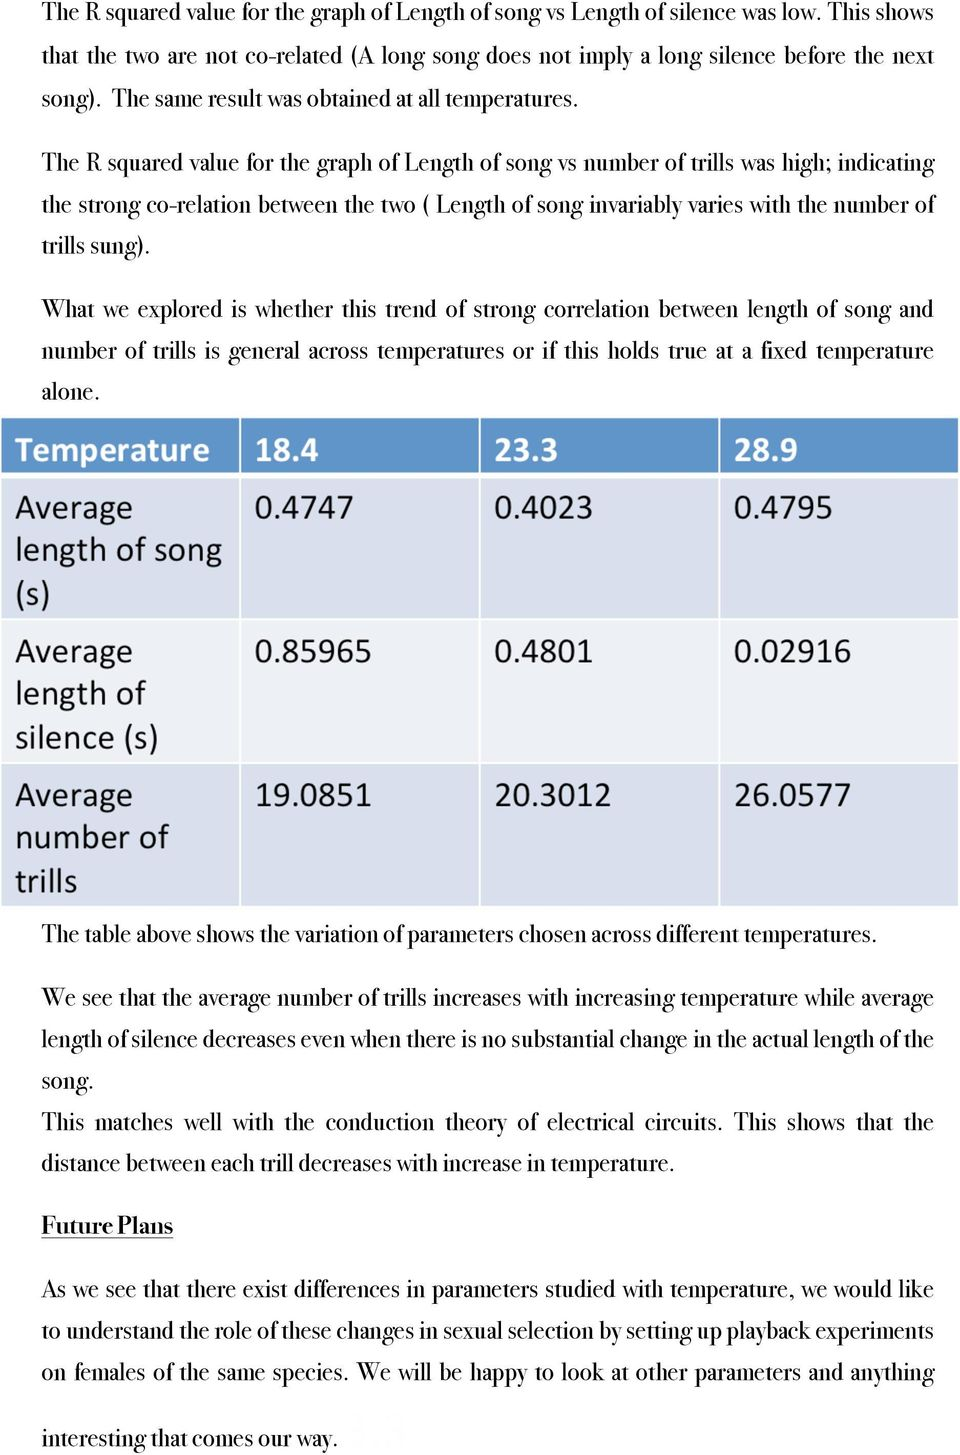 Sexual Selection In Night Singing Insects Harsha Kumar Satish Bitesize Gcse Physics Electrical Circuits Ac And Dc Revision 2 The R Squared Value For Graph Of Length Song Vs Number Trills Was